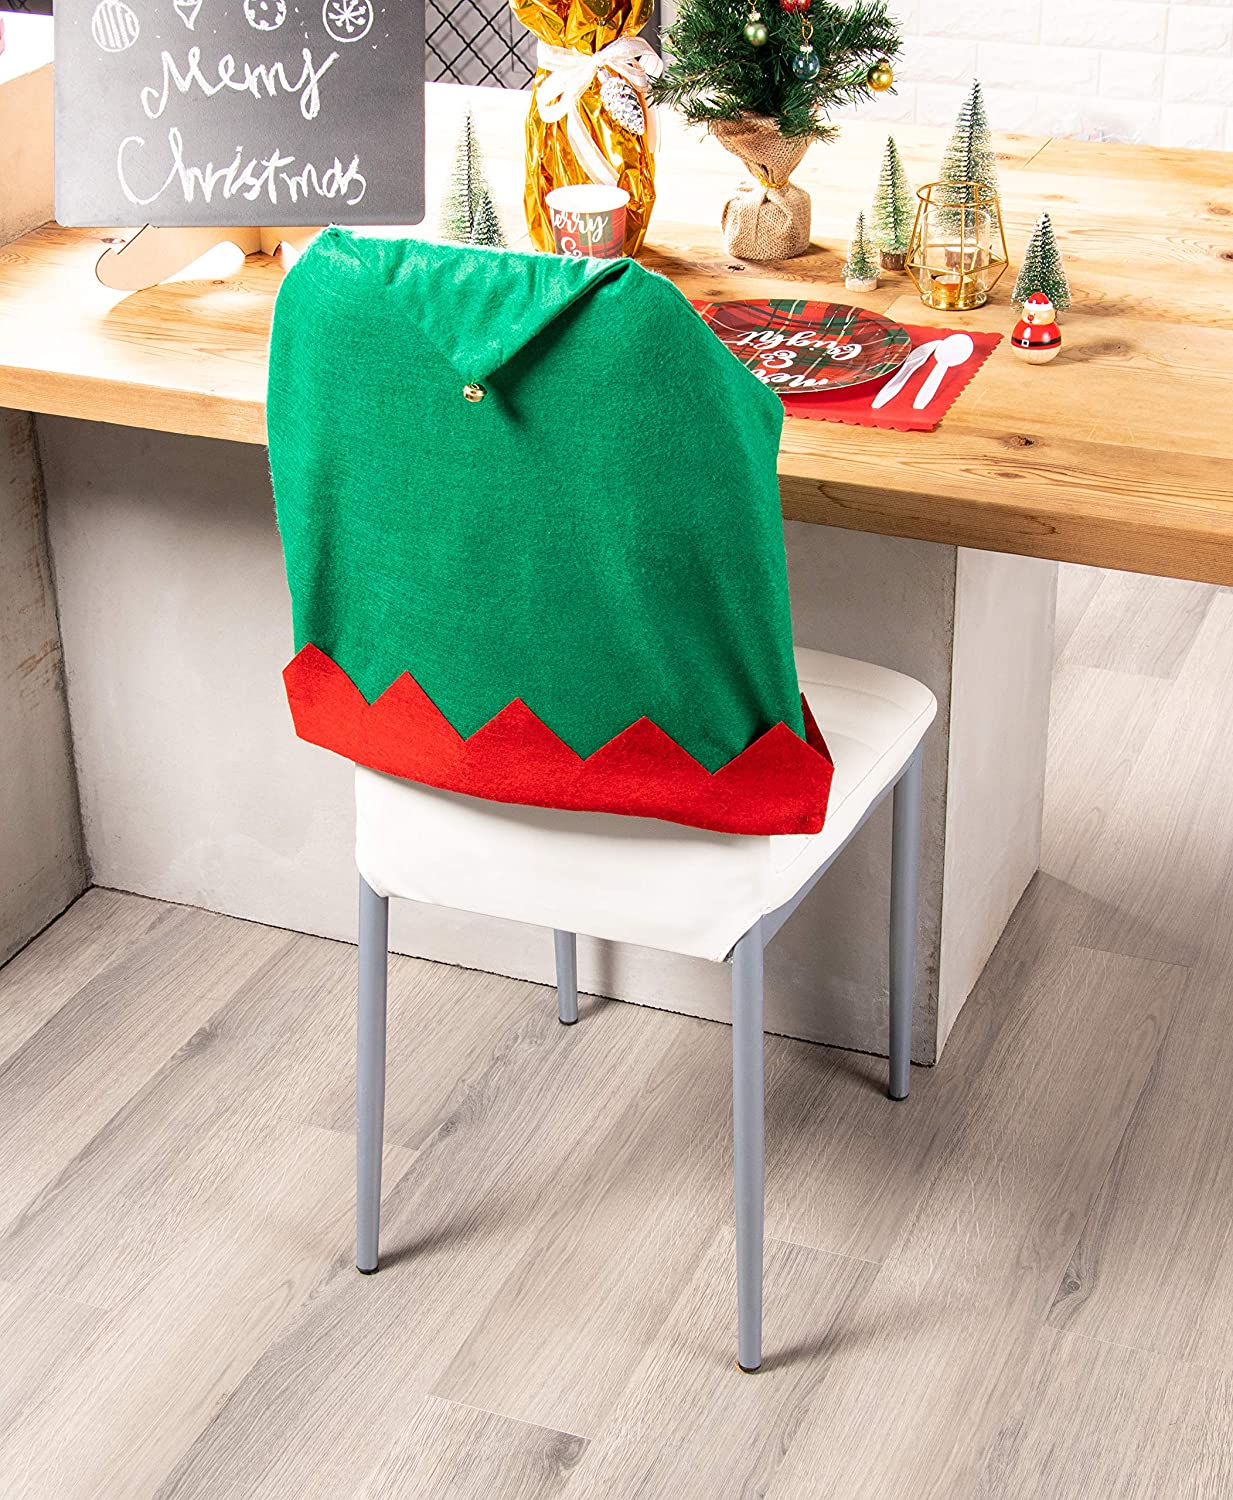 19 x 22 Inches 6-Pack Dining Seat Back Slipcover Holiday Themed Accessories Festive Decor for Home and Kitchen Santa Elf Hat Design with Gold Bell Red and Green Juvale Christmas Chair Covers